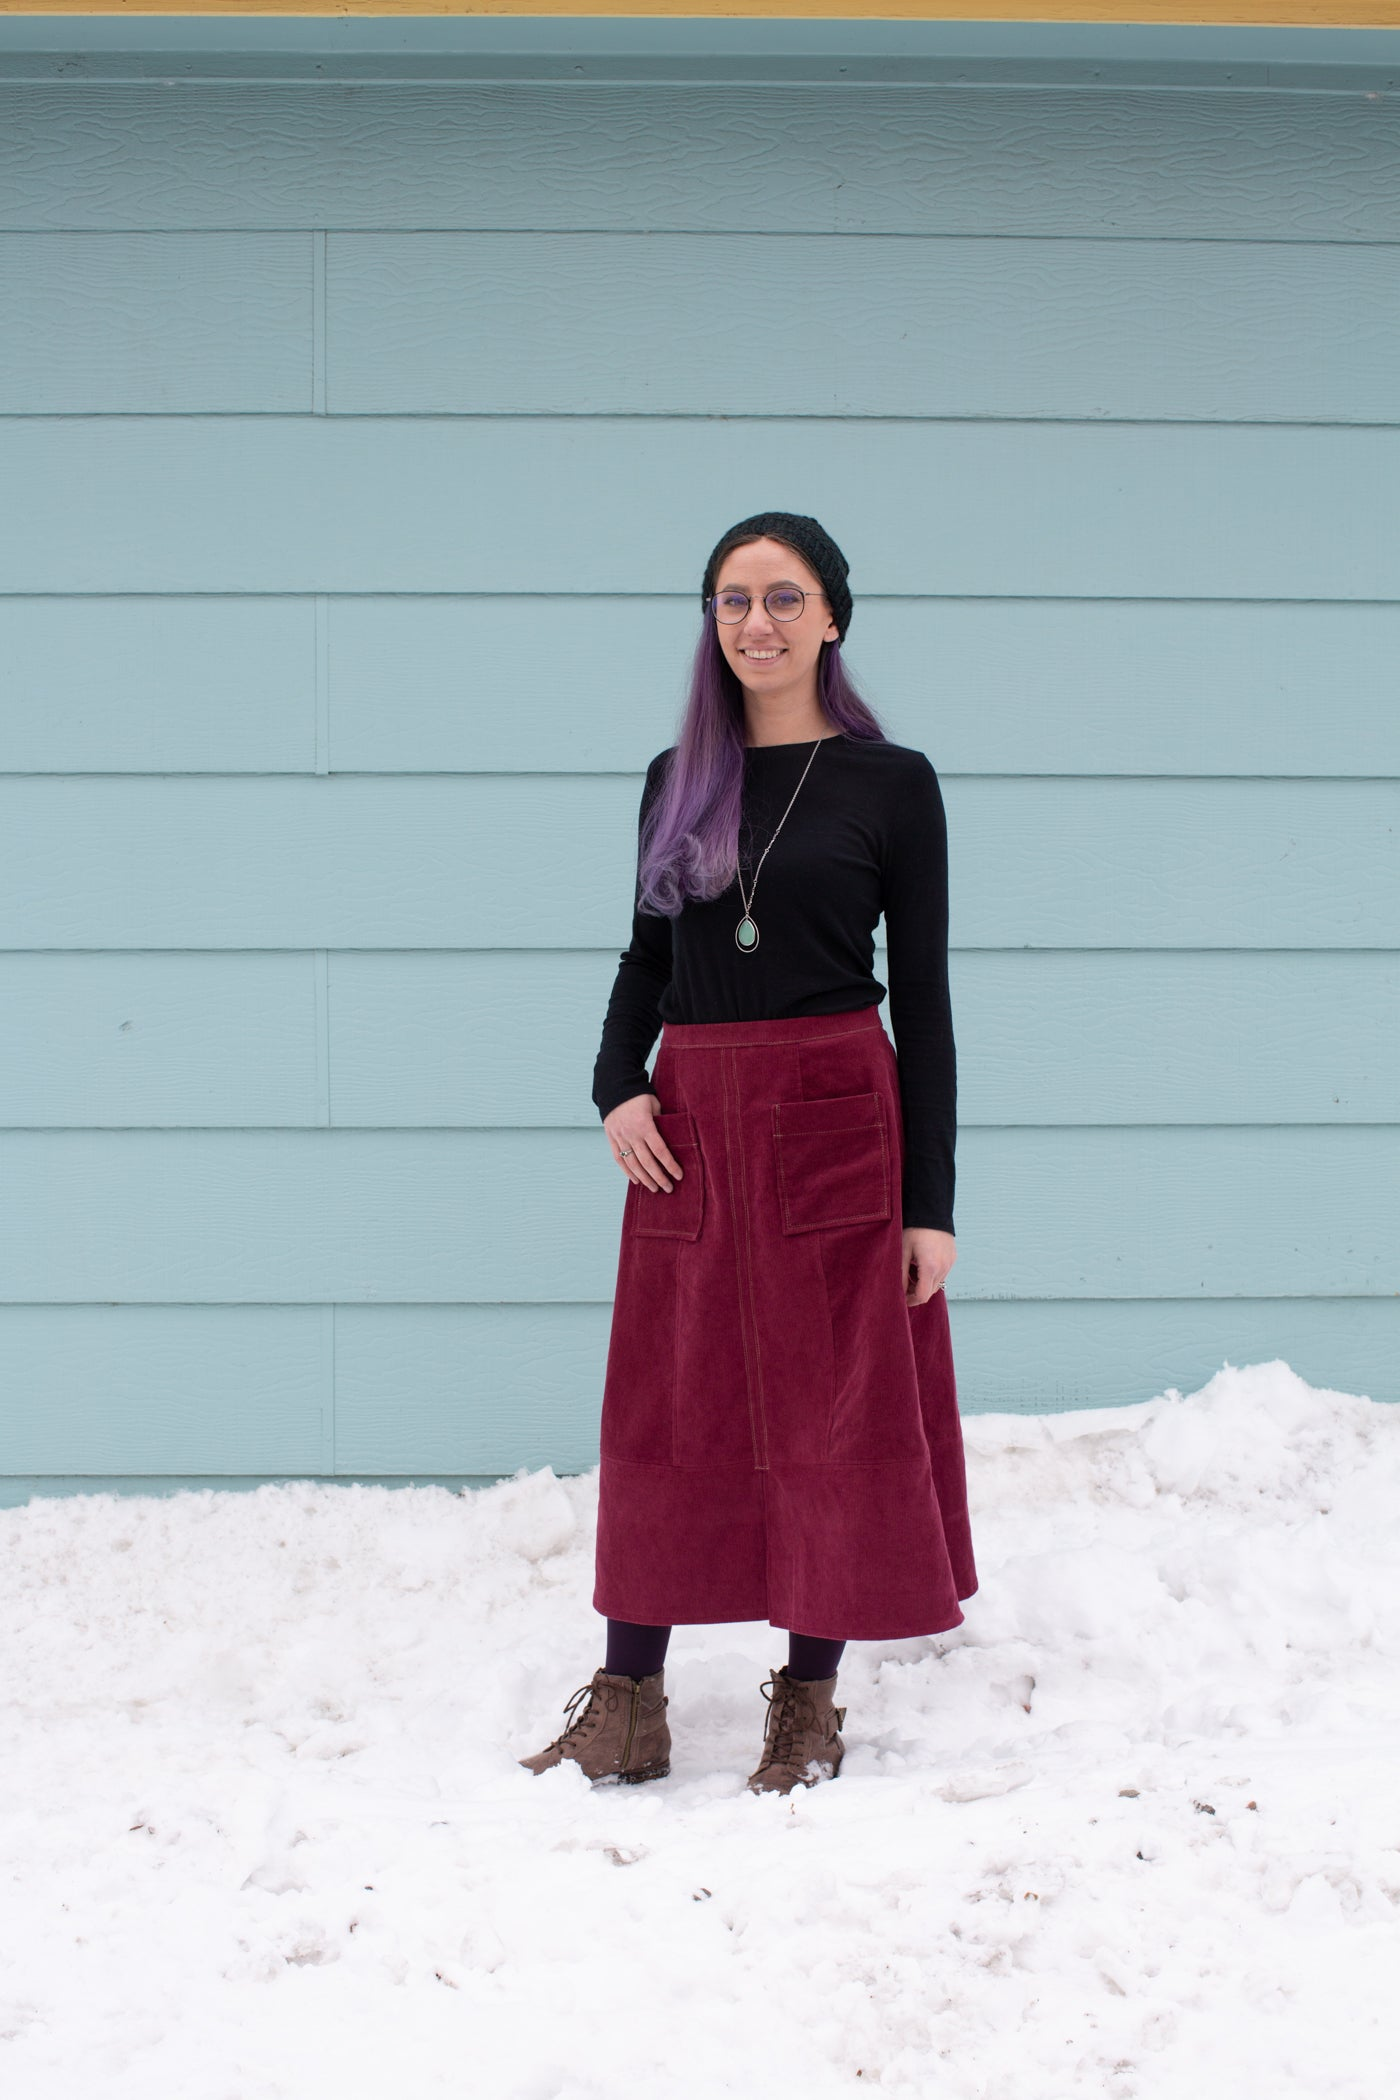 Aly standing in snow against a sea blue wall wearing a Reed Skirt in merlot corduroy and black long sleeve top.